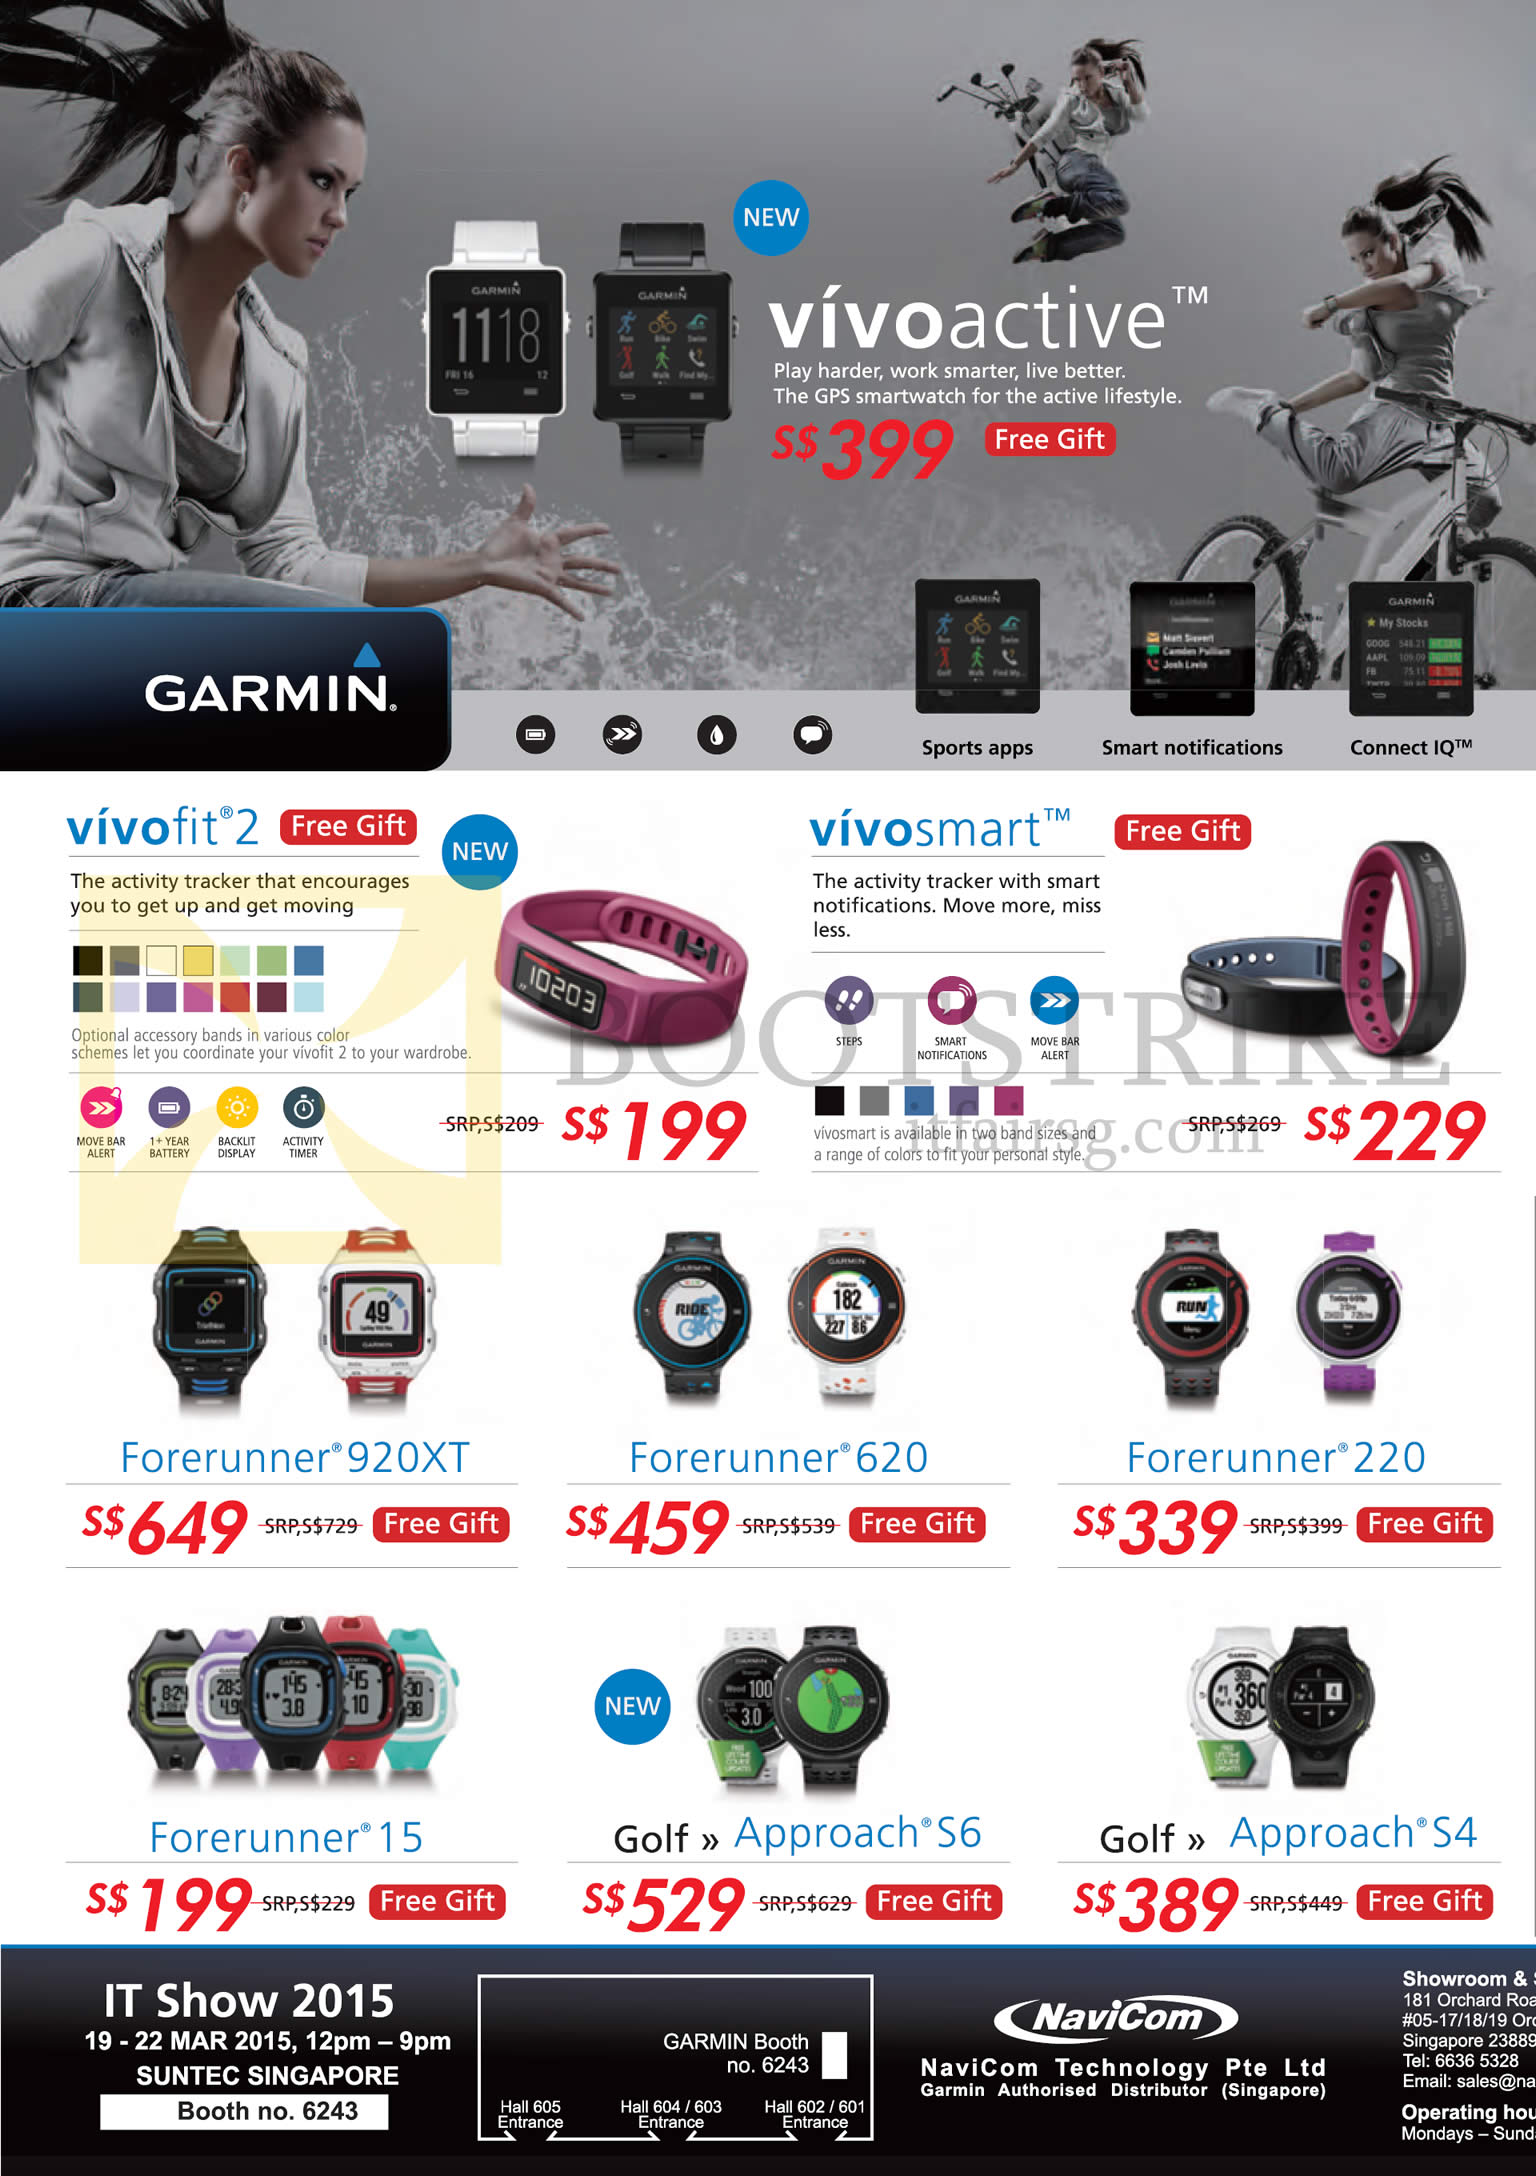 IT SHOW 2015 price list image brochure of Navicom Garmin Fitmess Bands GPS Watches Vivofit 2, Vivosmart, Forerunner 920XT, 620, 220, 15, Golf Approach S6, S4